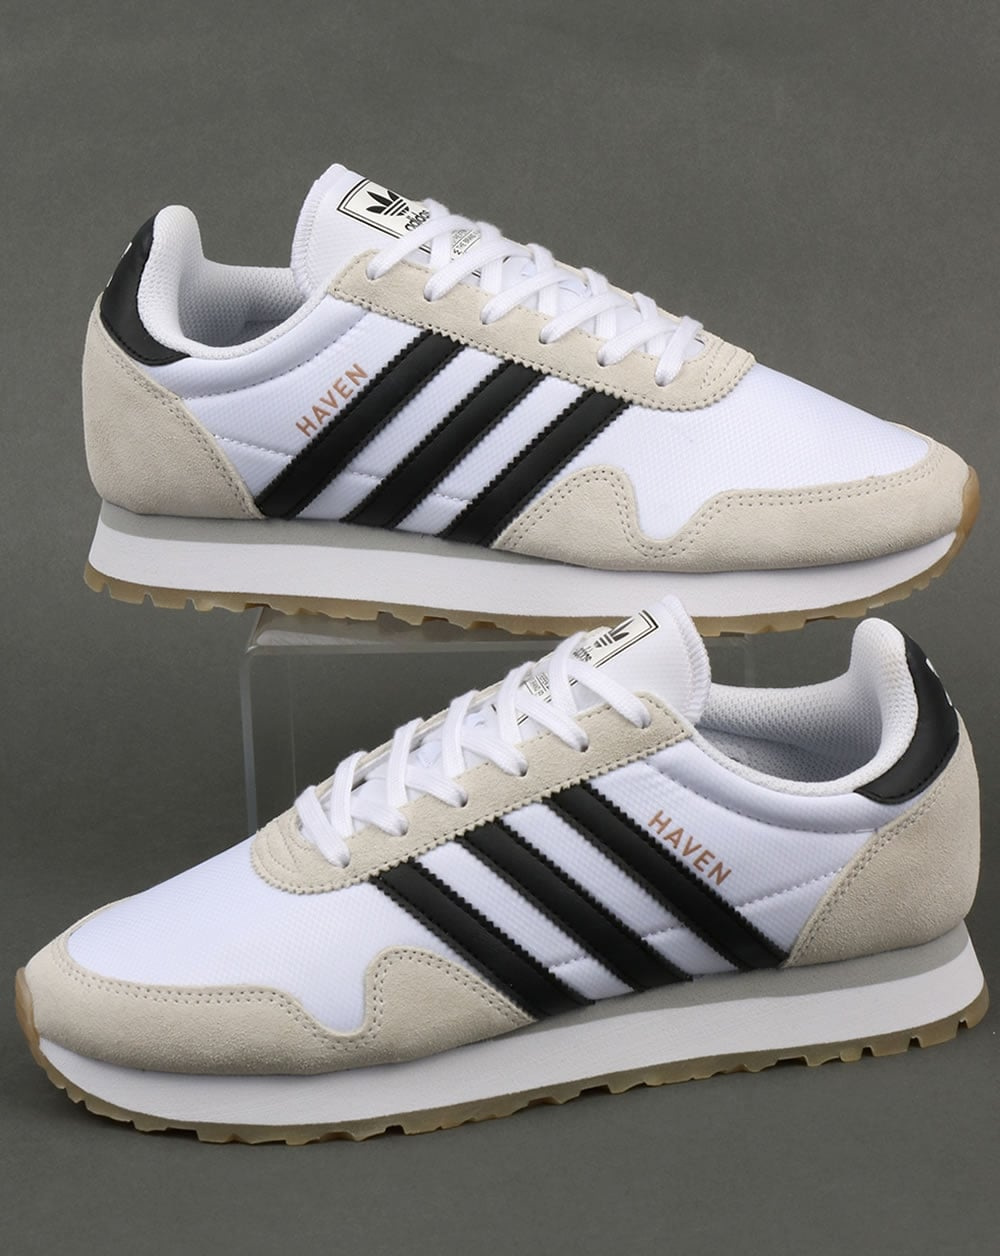 Mens Haven Trainers adidas Cheap Sale Exclusive 2018 Cheap Price Official Sale Online wu3bkhTT